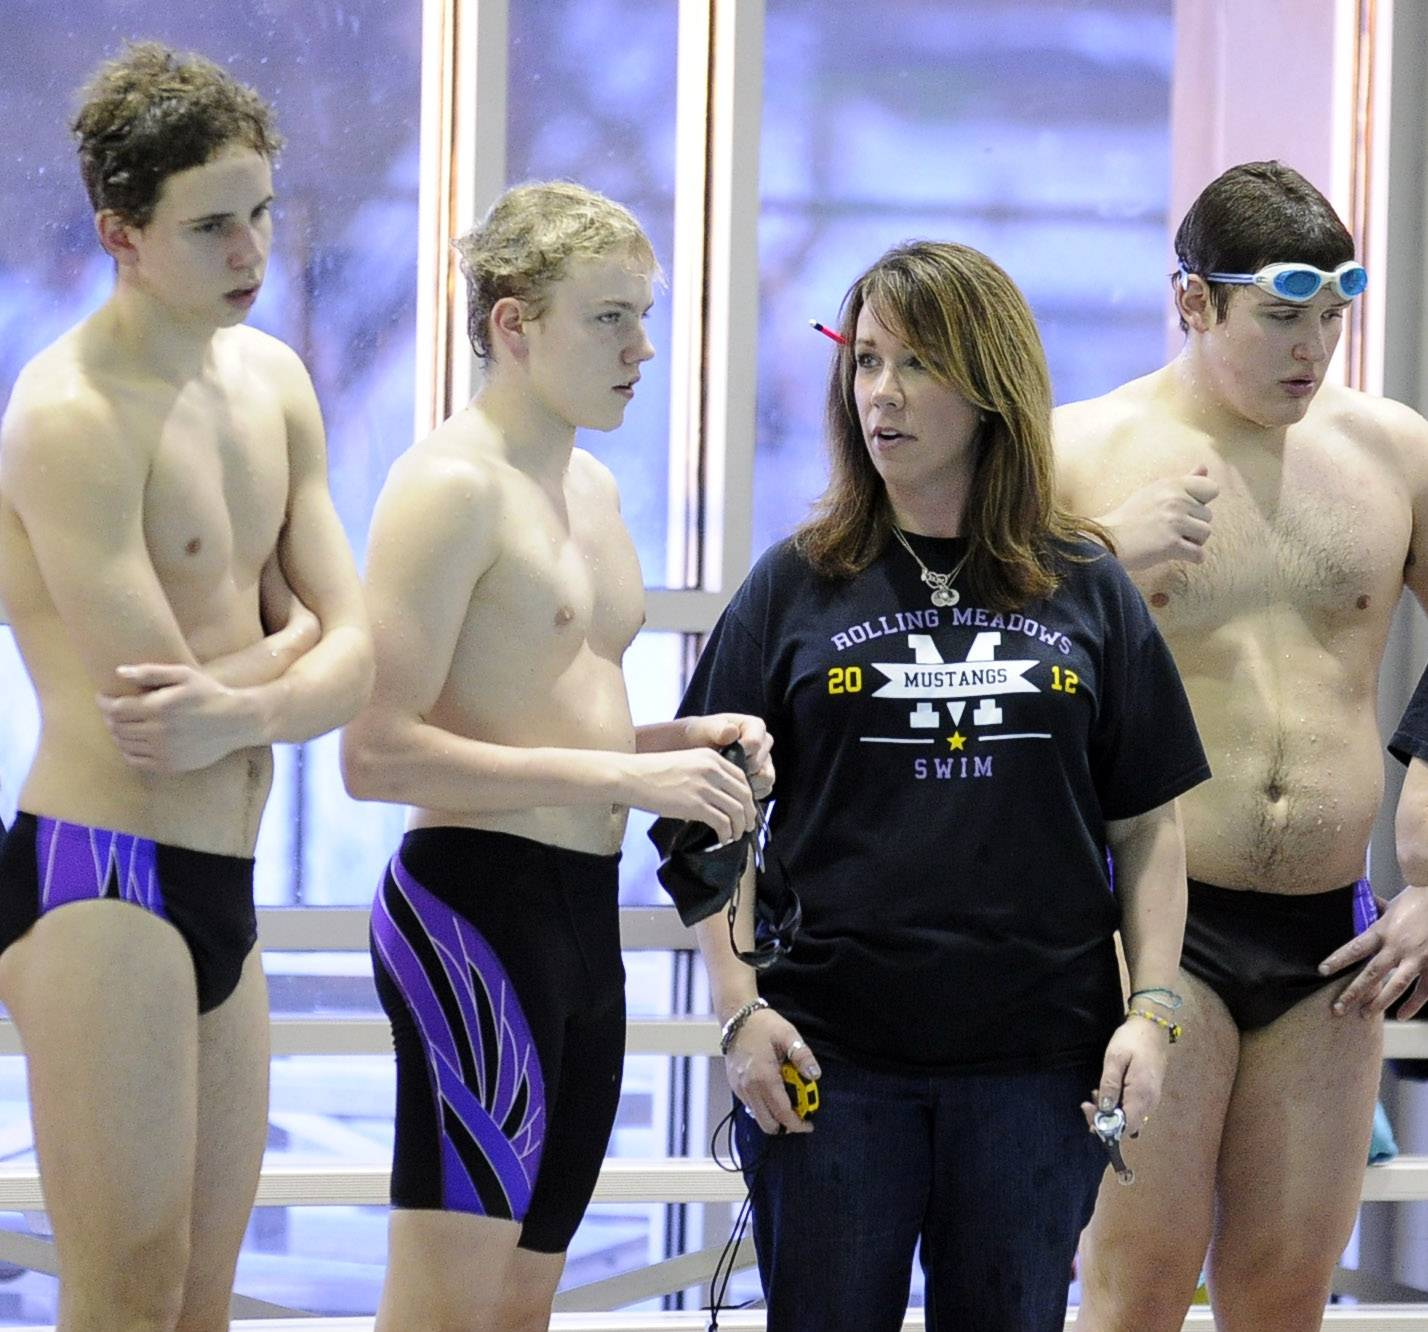 Rolling Meadows coach Monika Chiapetta chats with freshman Filip Pancerz, left, during a recent meet at Olympic Pool in Arlington Heights. The Mustangs' improvement is one reason this year's MSL meet figures to be one of the best ever.